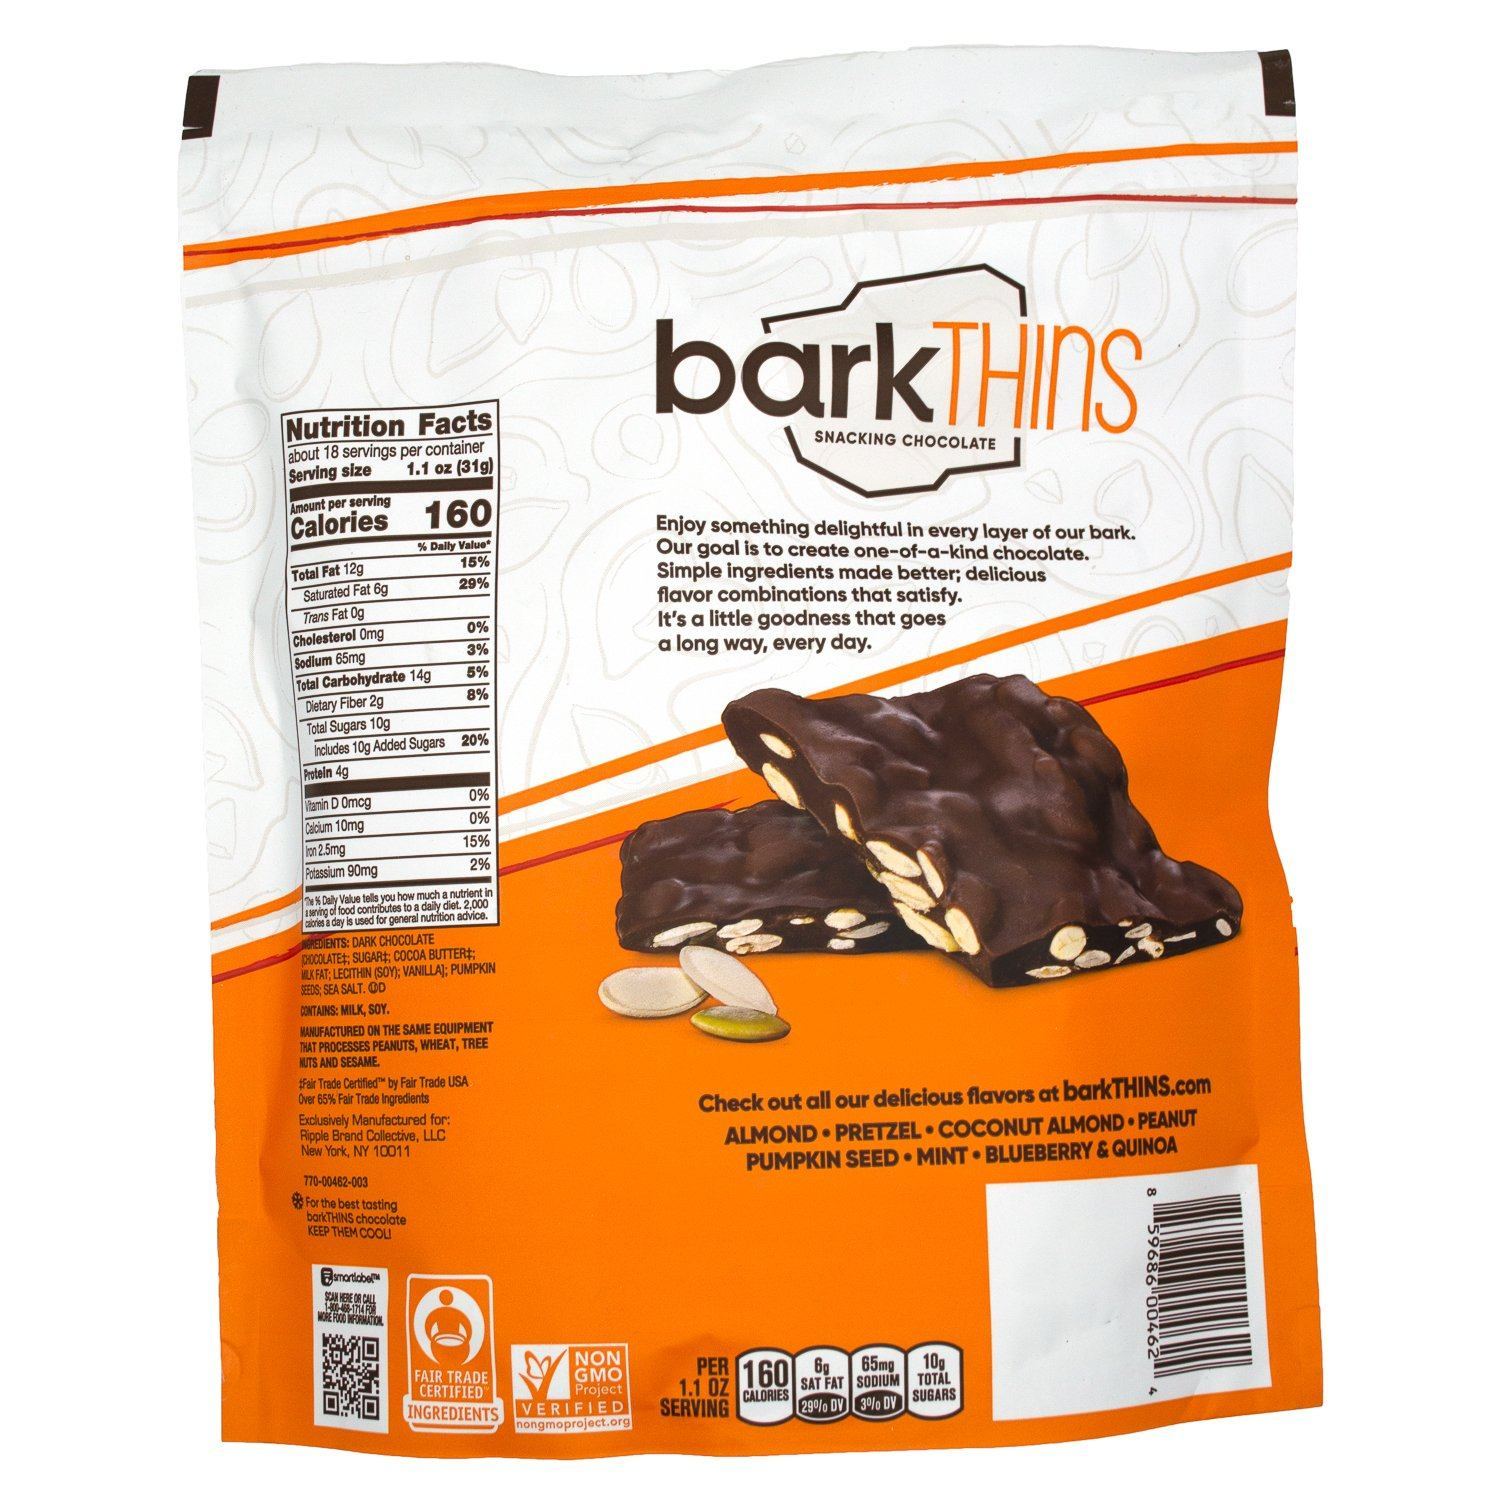 barkTHINS Snacking Chocolate Meltable barkTHINS